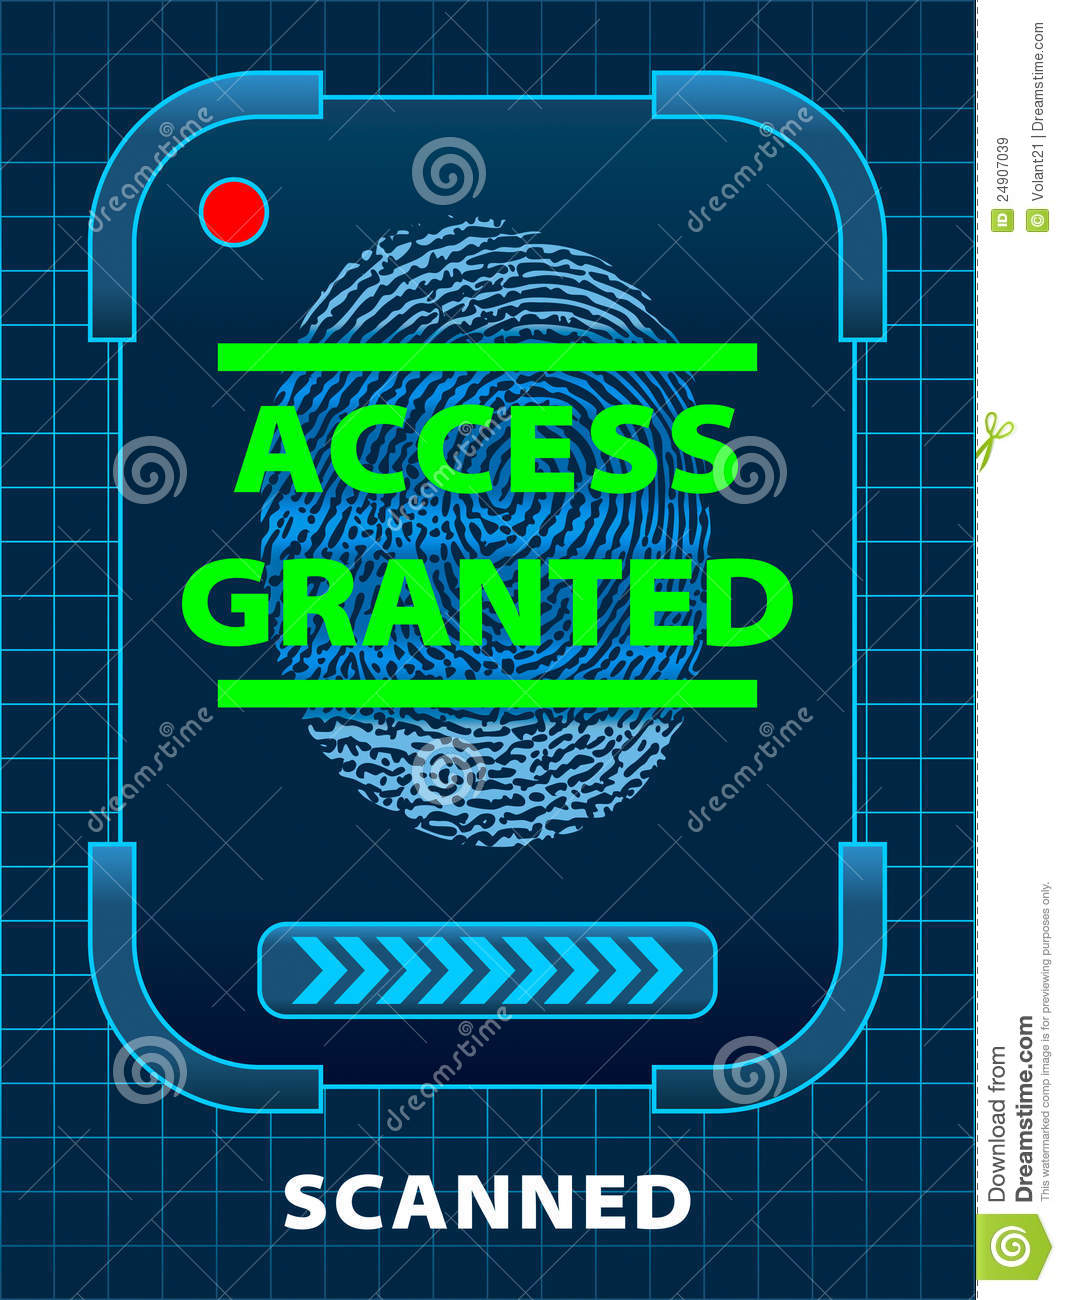 Access Granted Royalty Free Stock Images - Image: 24907039